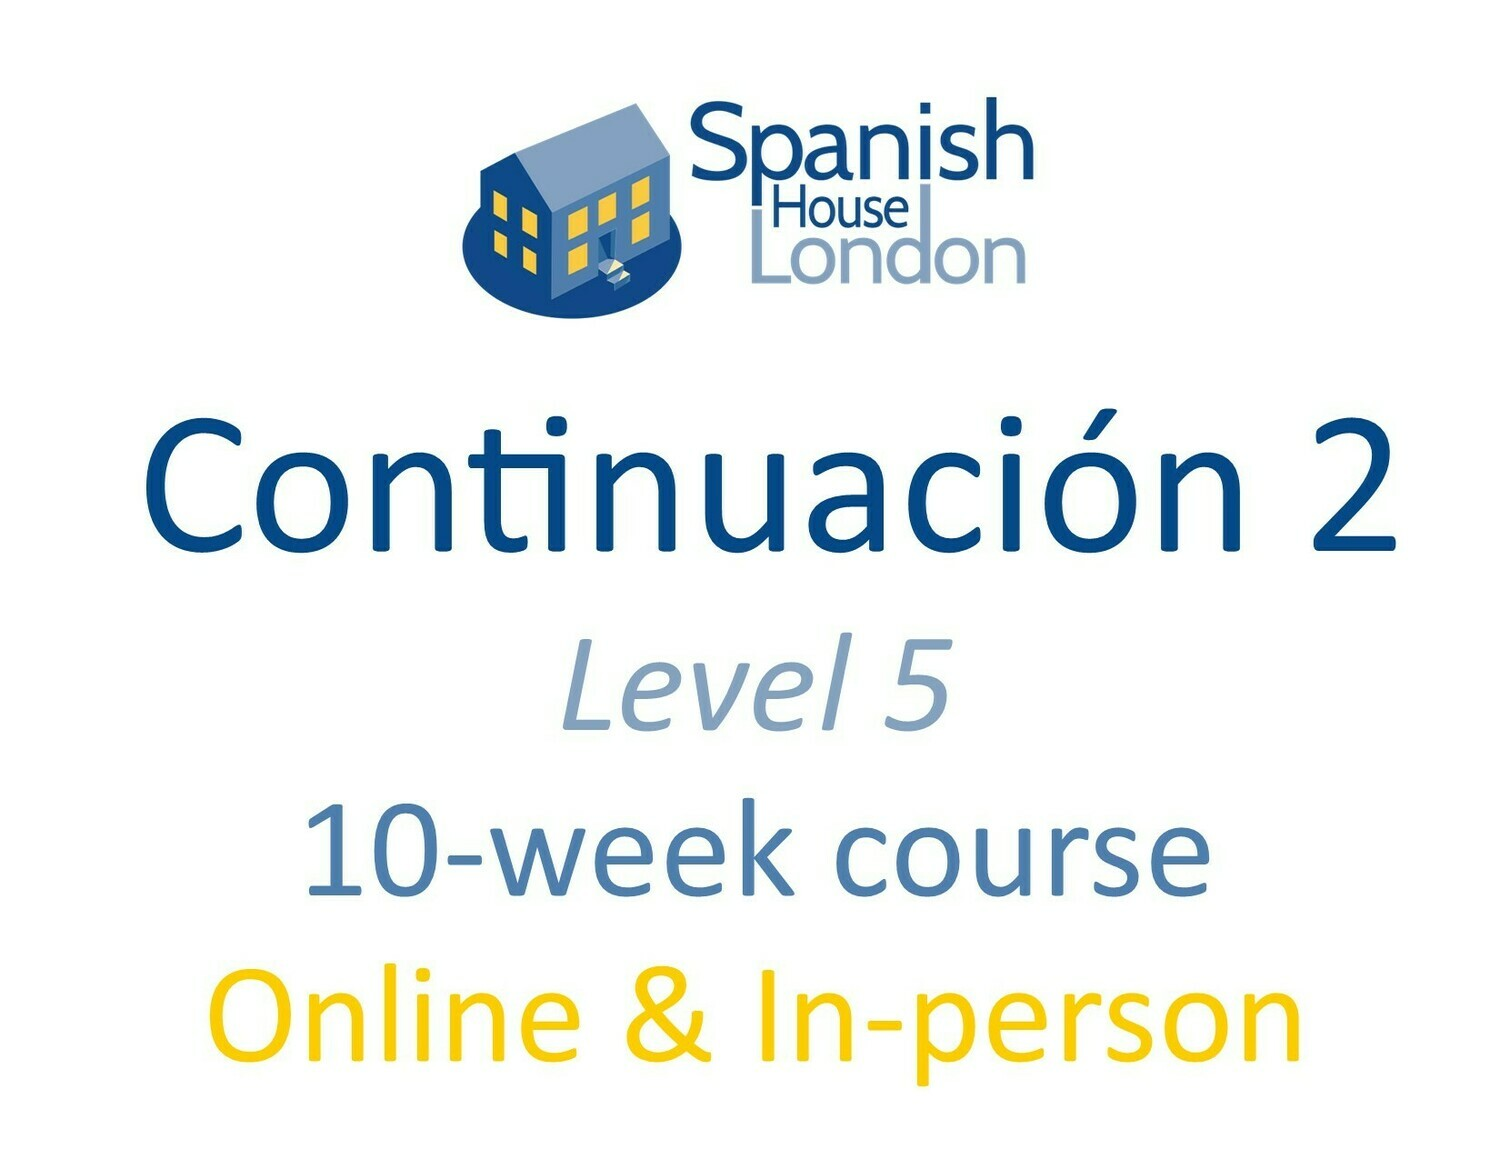 Continuacion 2 Course starting on 13th July at 6pm in Clapham North